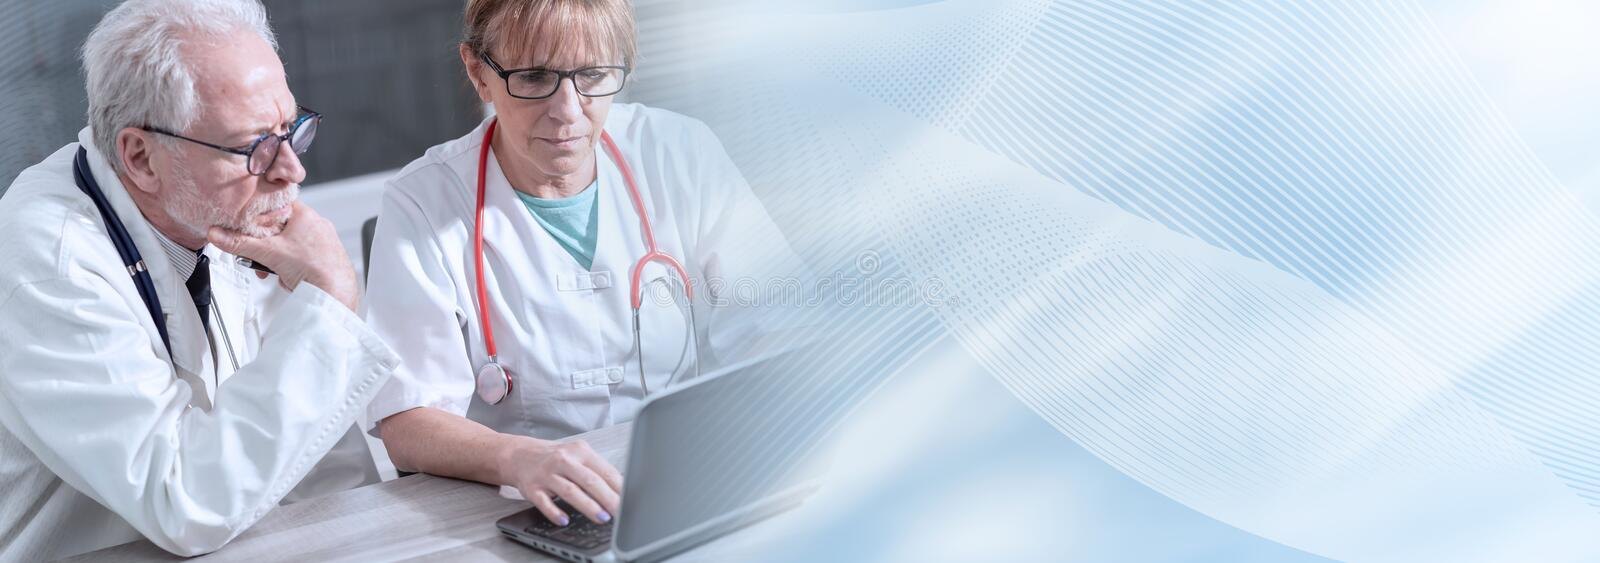 Two doctors discussing about medical report on laptop; panoramic banner royalty free stock images